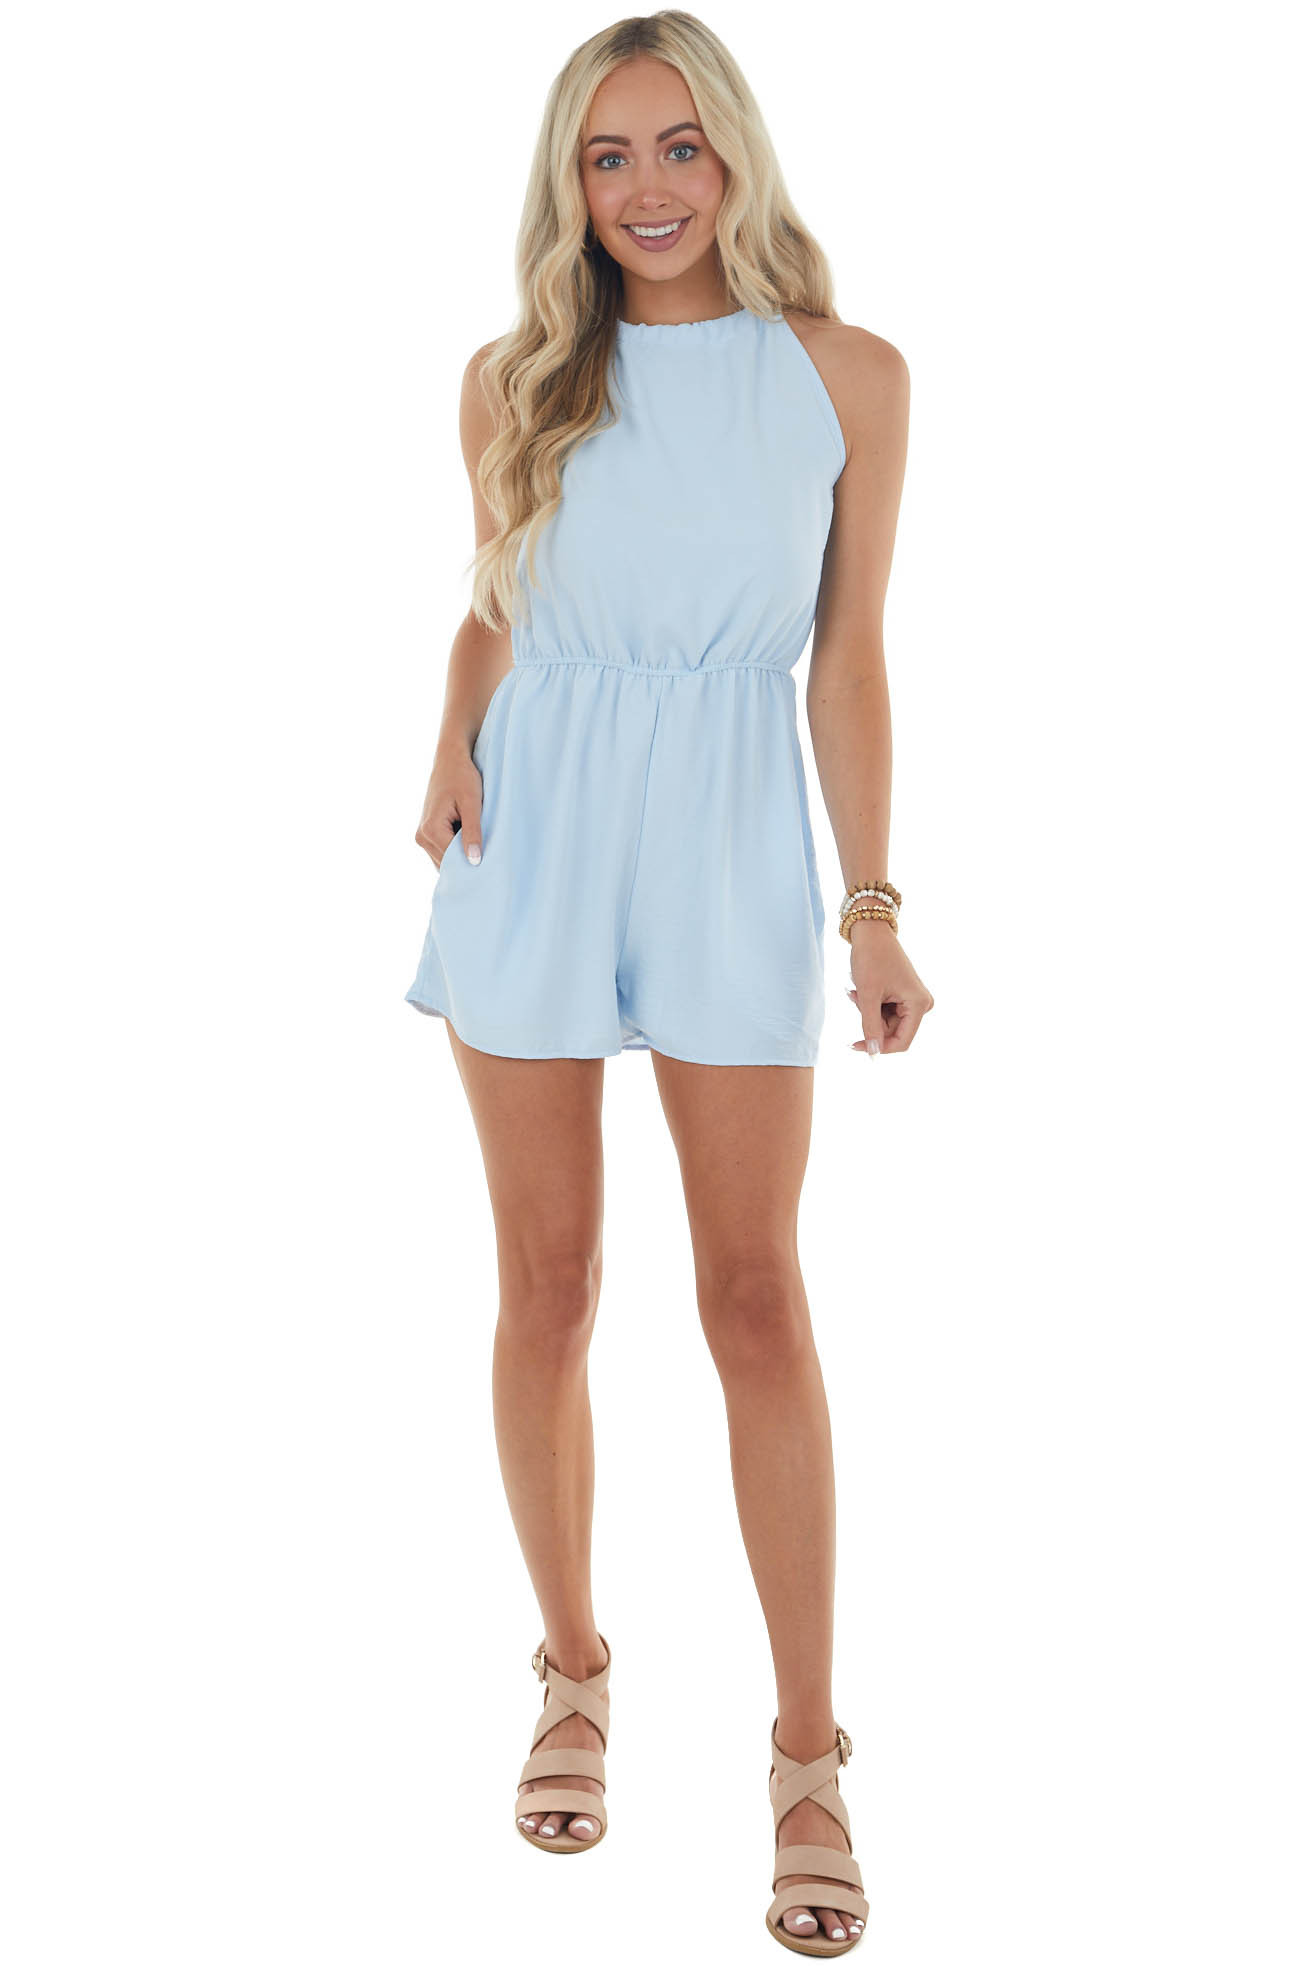 Baby Blue Sleeveless Romper with Tie Detail